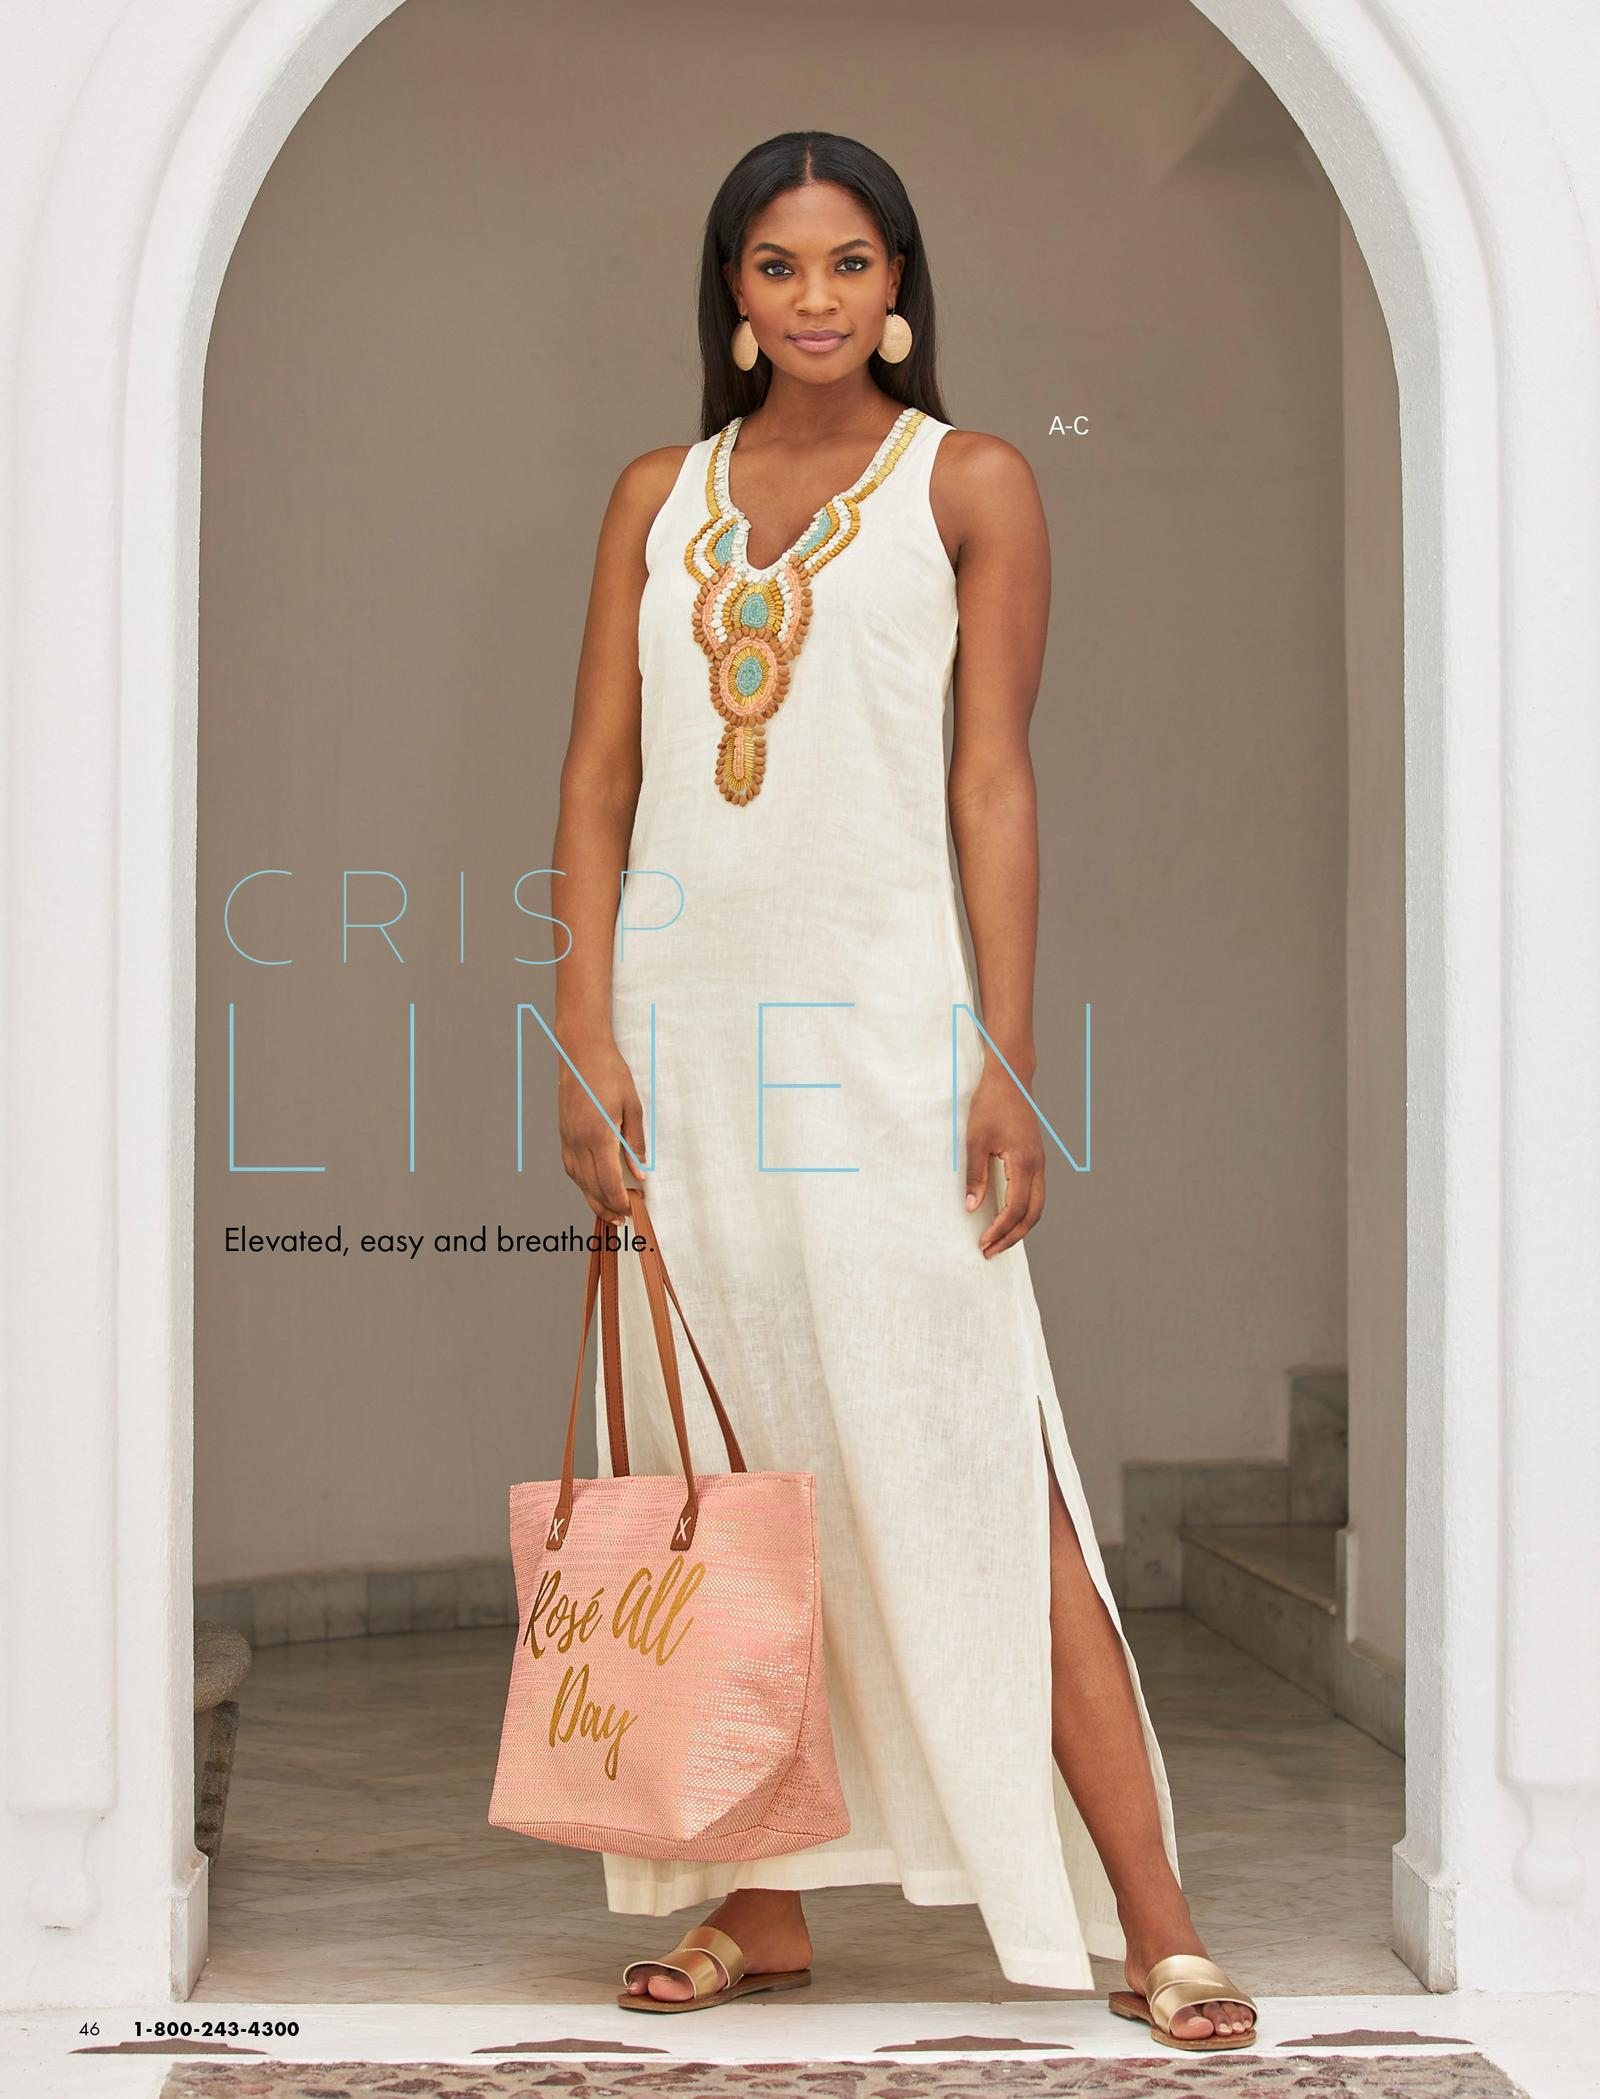 model wearing a white sleeveless linen dress with embellishments along the neckline, gold double strap sandals, gold earrings, and a pink graphic beach bag.